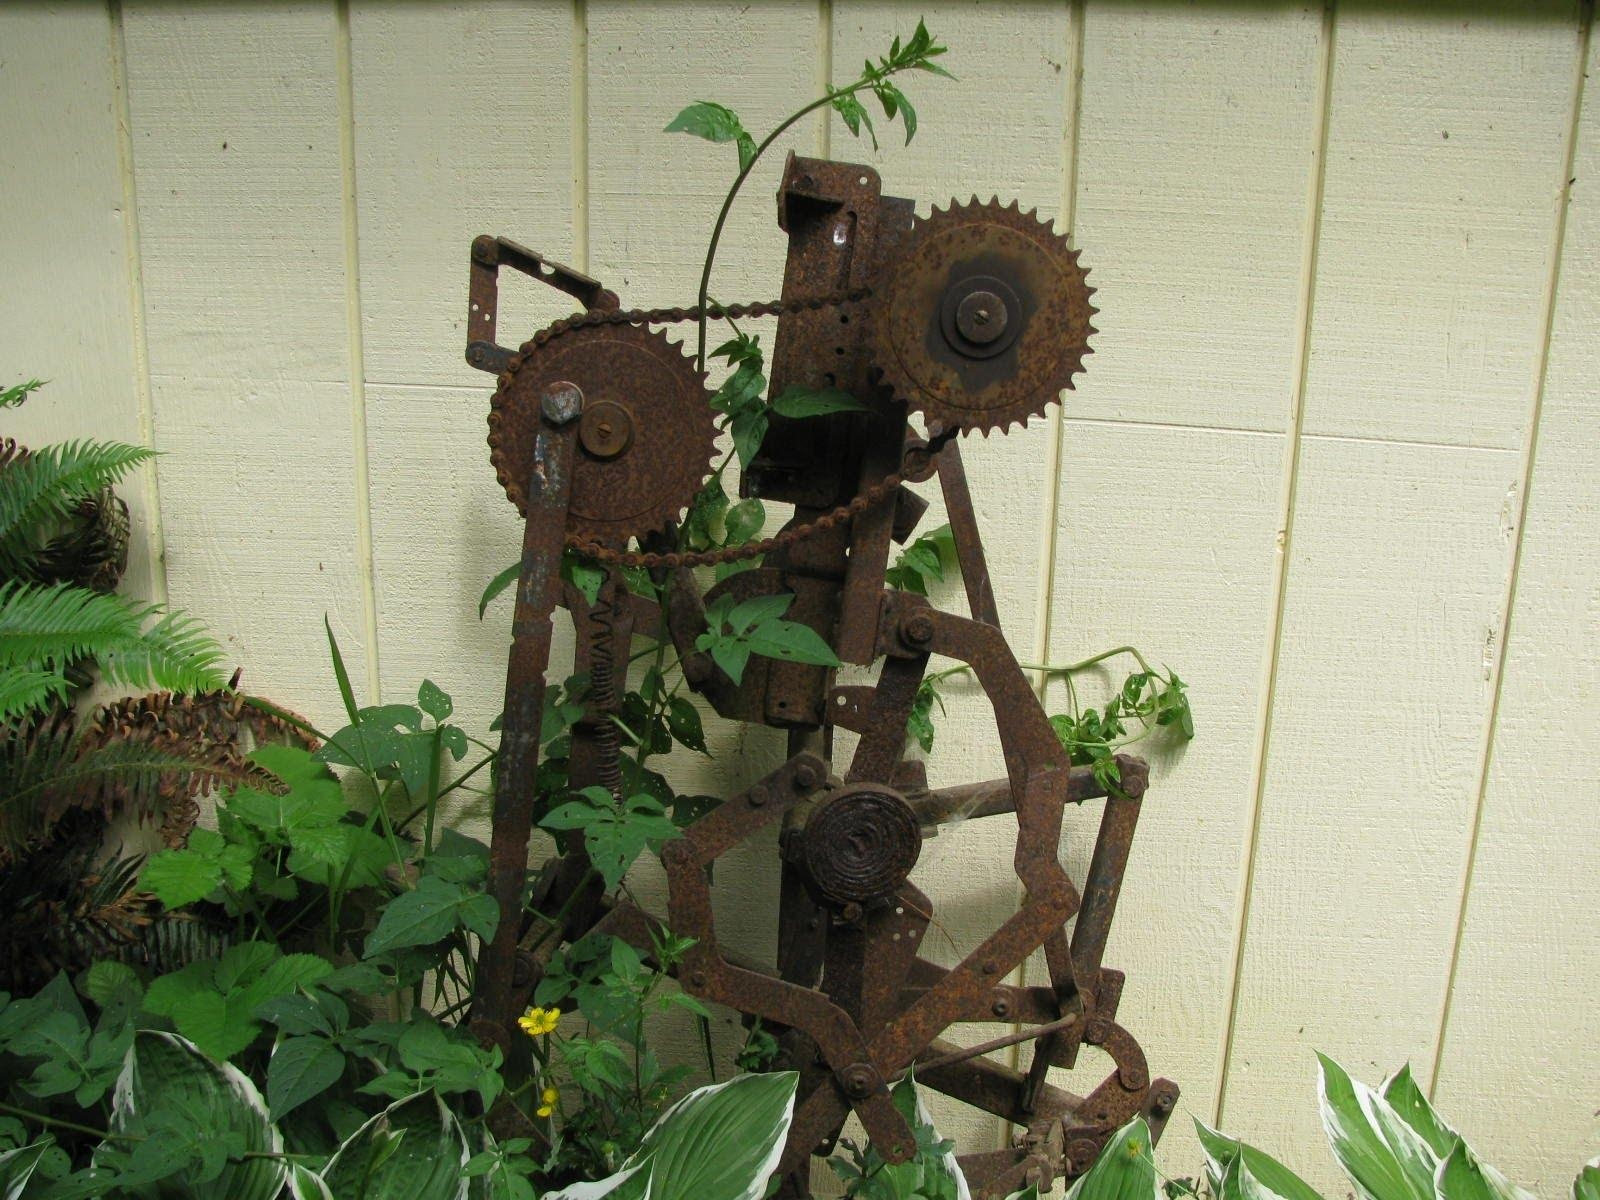 Making Metal Sculptures For Yard Art – Youtube For Metal Sunflower Yard Art (Image 14 of 20)